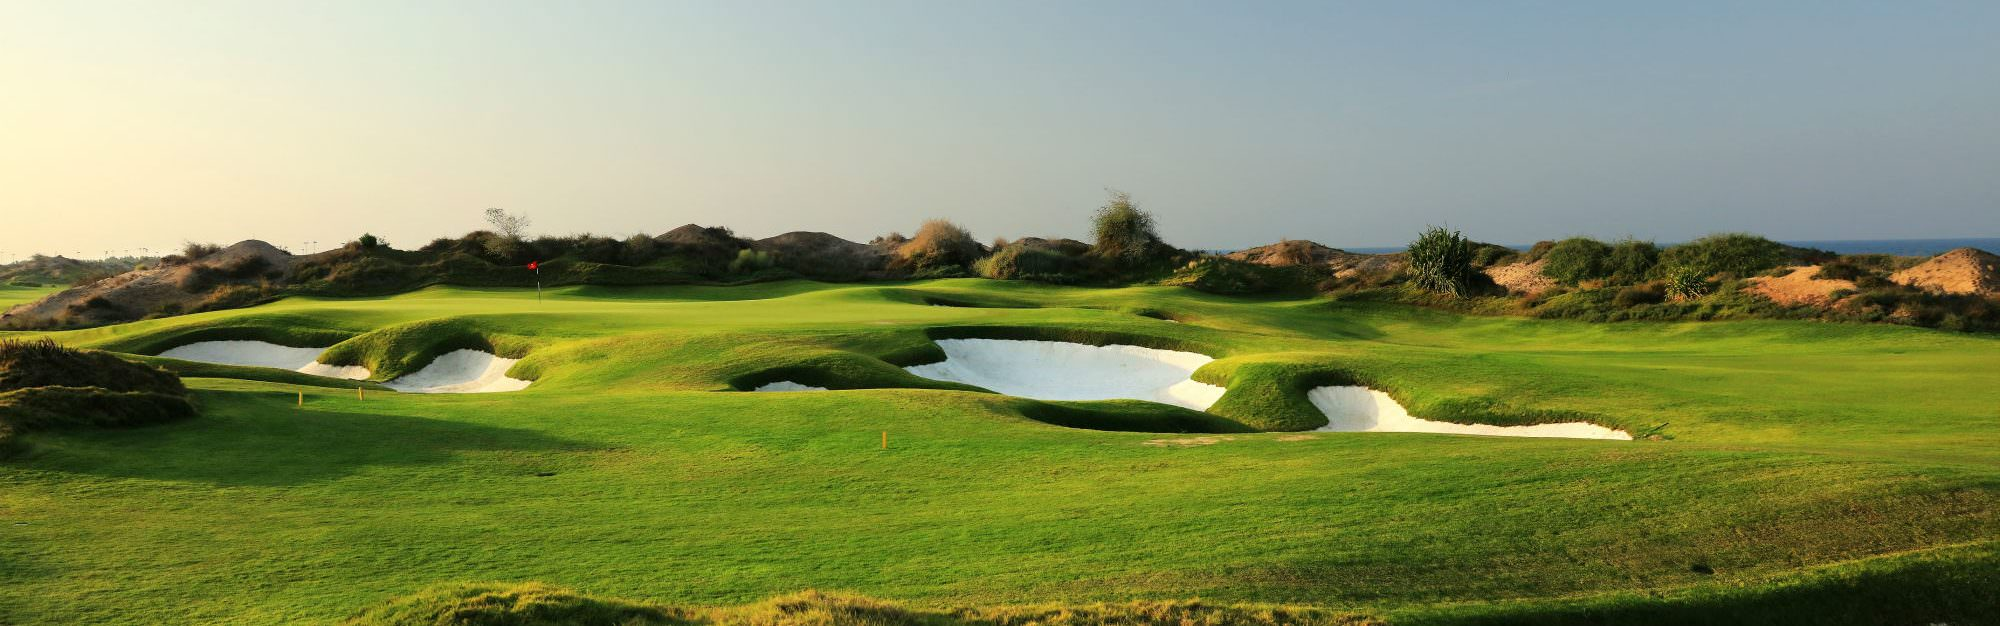 NCG Top 25 Golf Courses in the Middle East